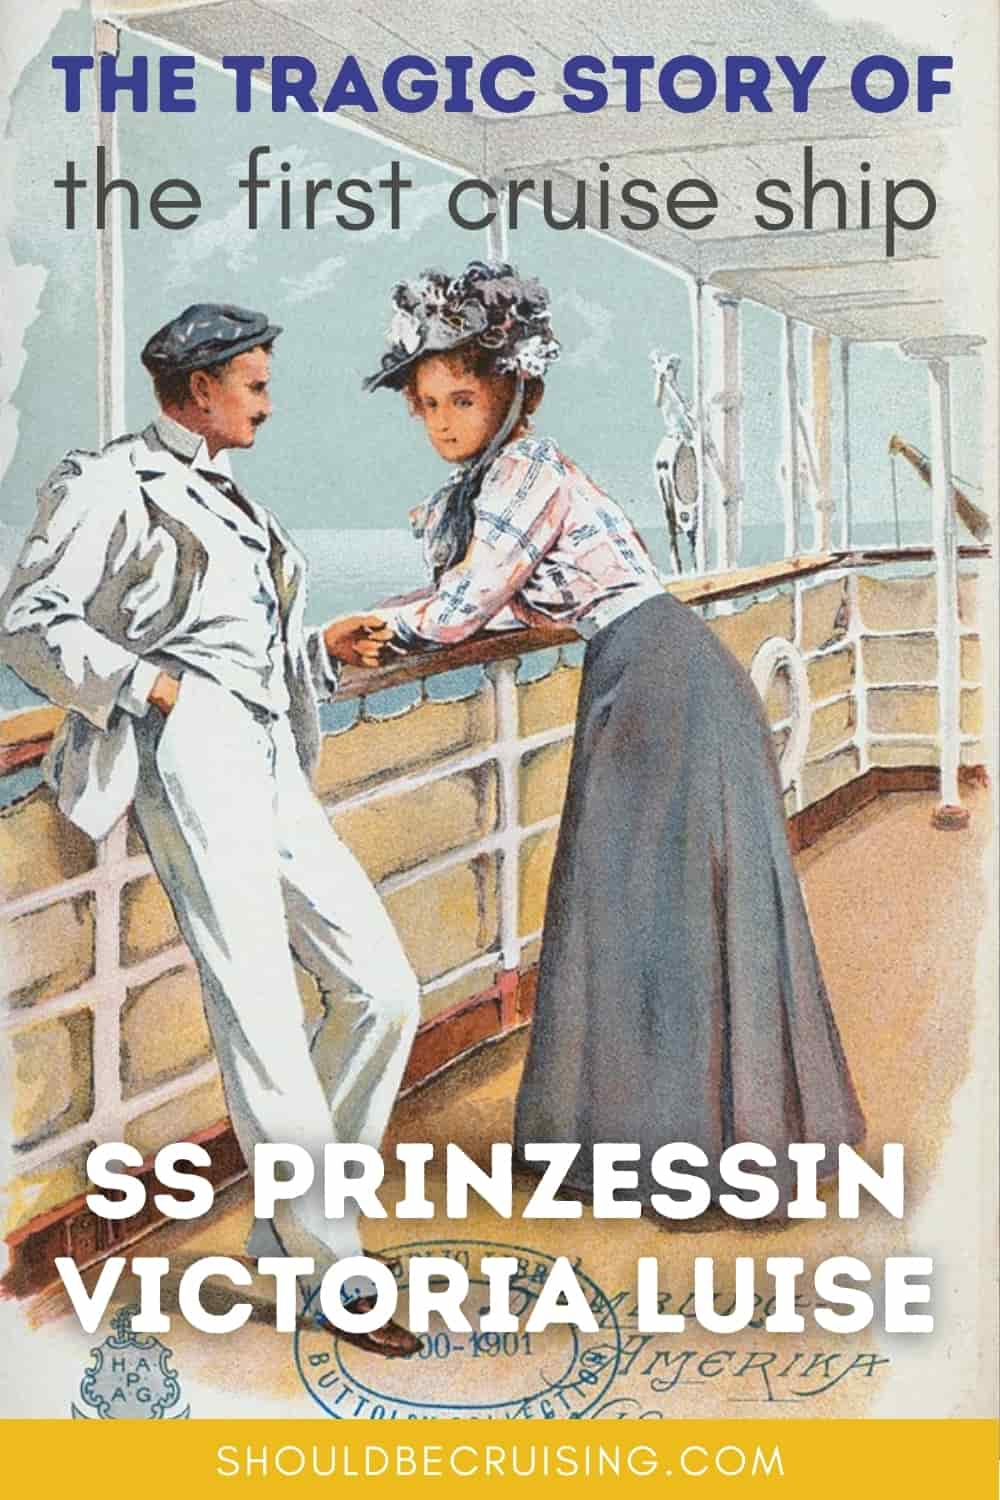 The Story of the First Cruise Ship: SS Prinzessin Victoria Luise